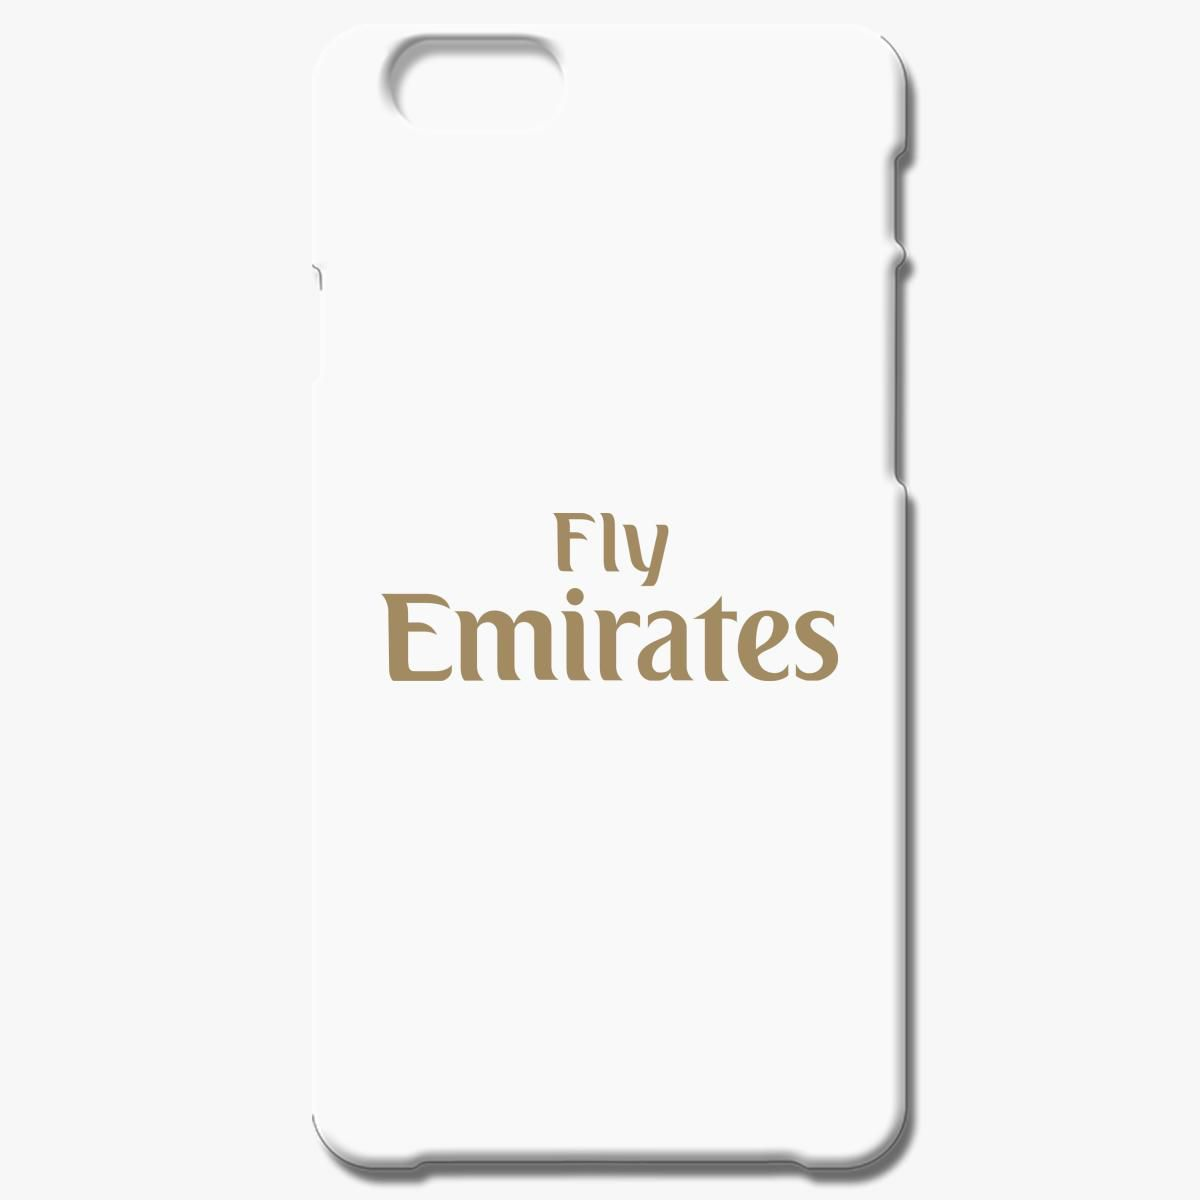 Fly Emirates Iphone 6 6s Case